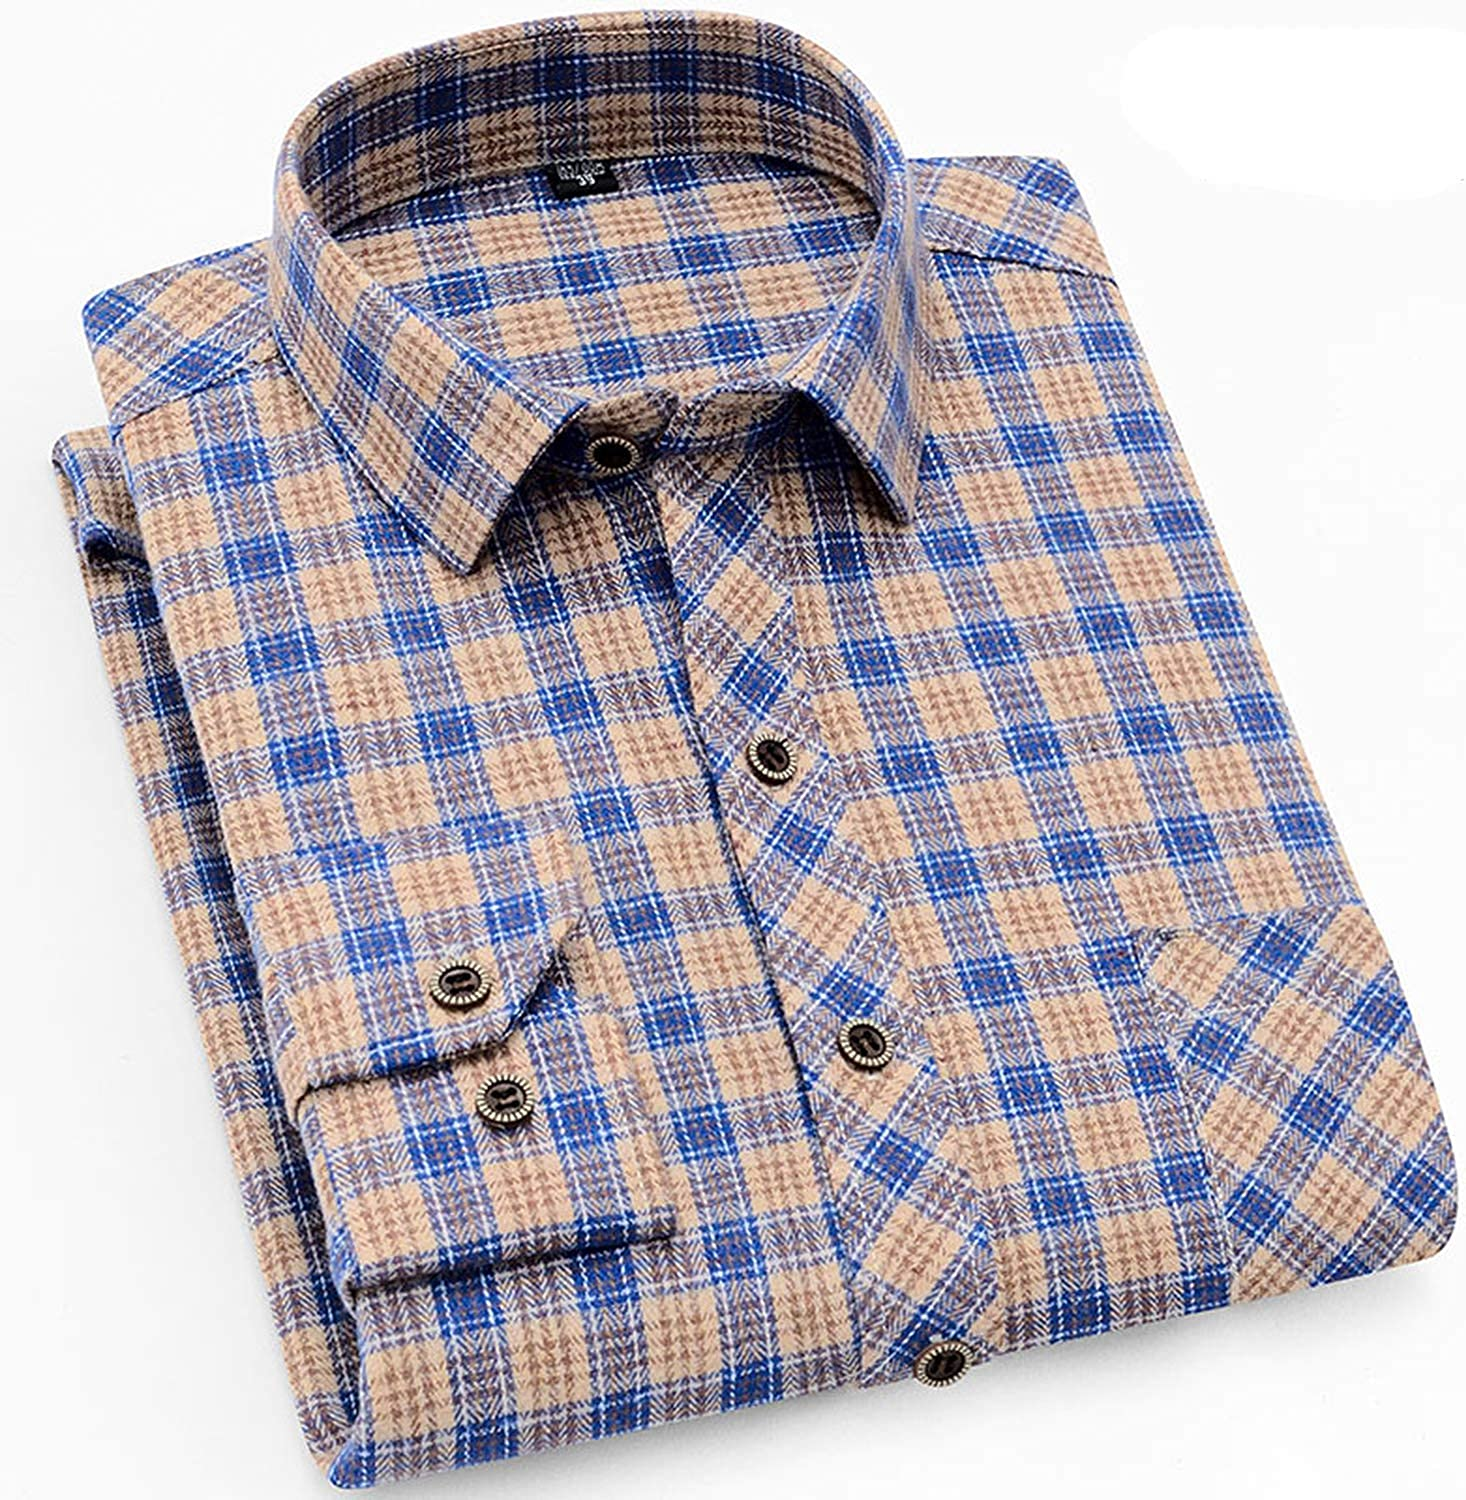 2019 Male Casual Shirts Cotton Flannel Plaid Long Sleeve Shirt,6611,Asian XXL Label 43